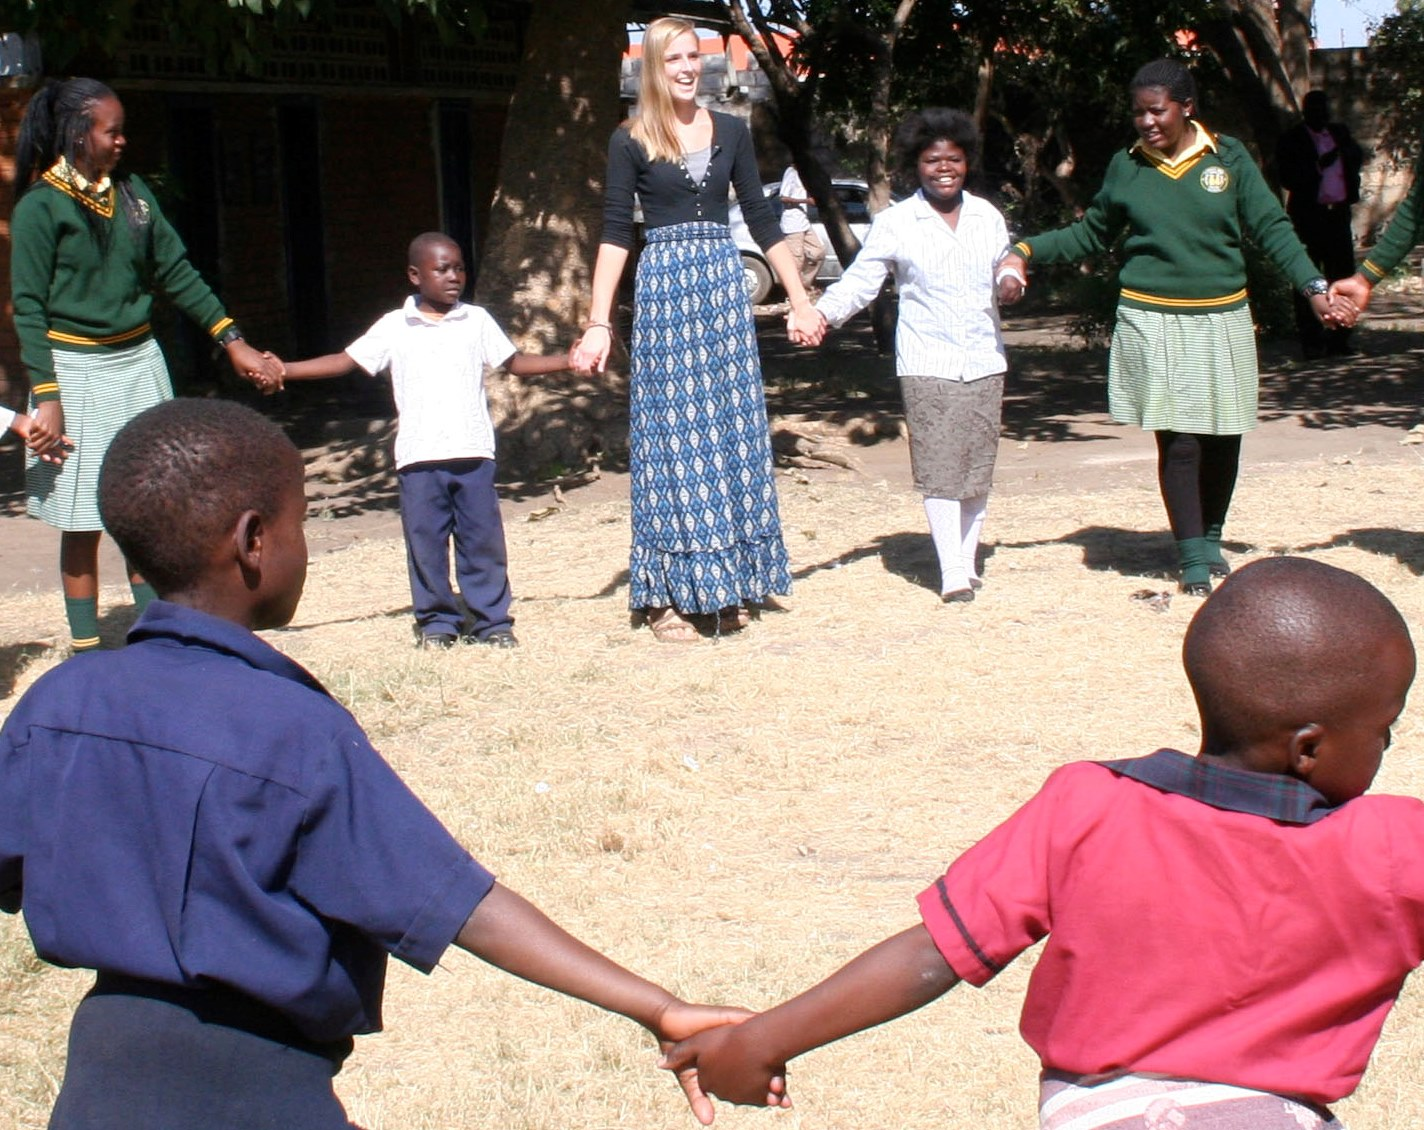 Rachel holding hands with Zambian children in a circle